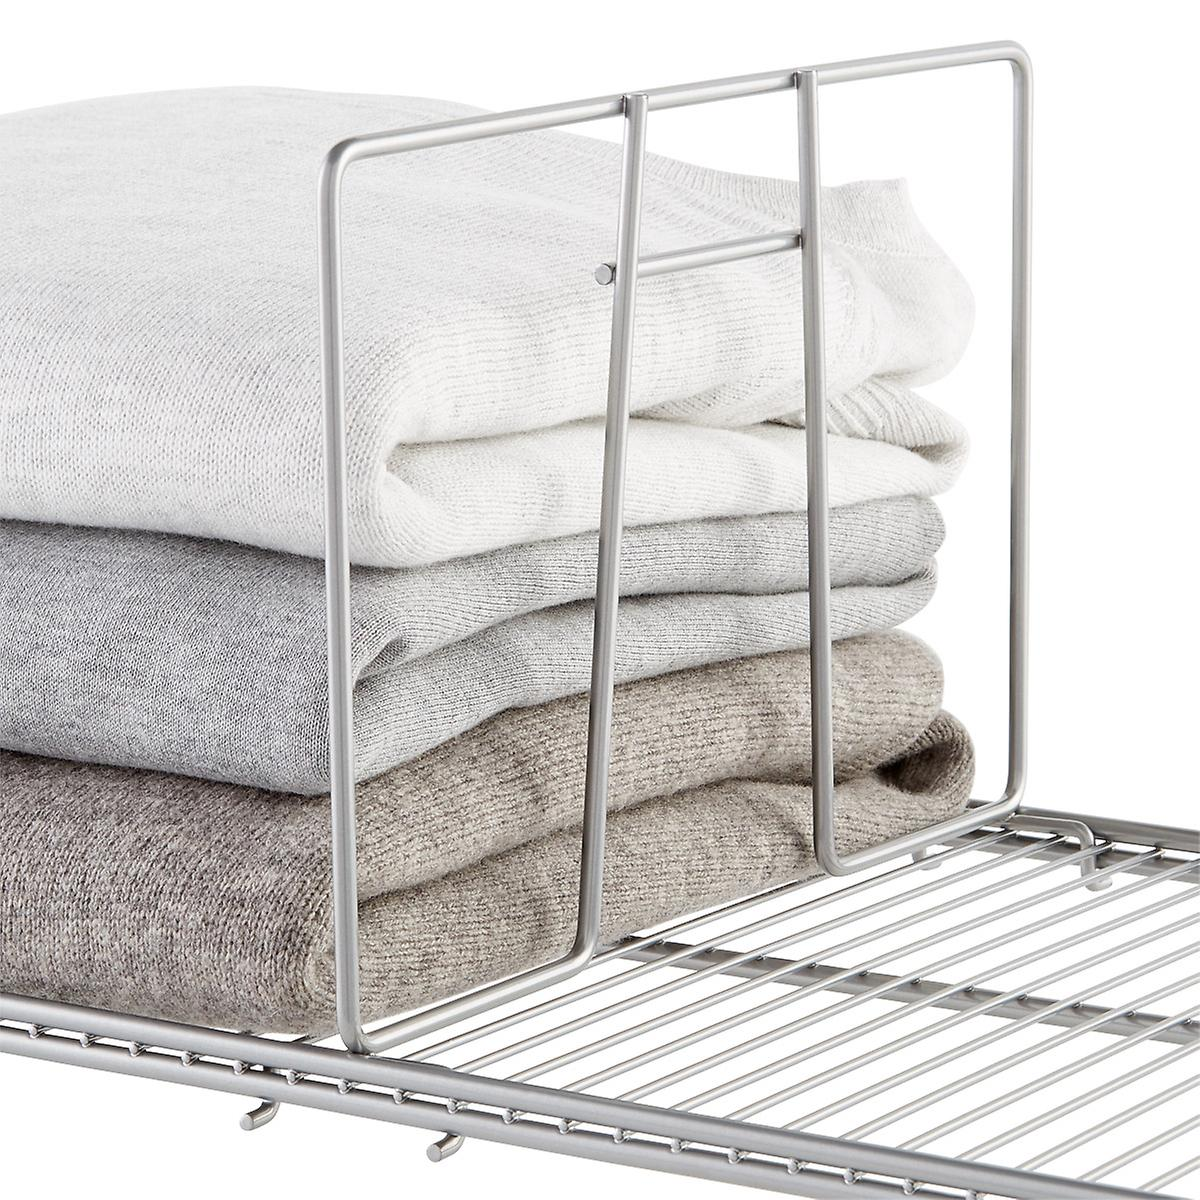 Platinum elfa Ventilated Wire Shelf Dividers | The Container Store